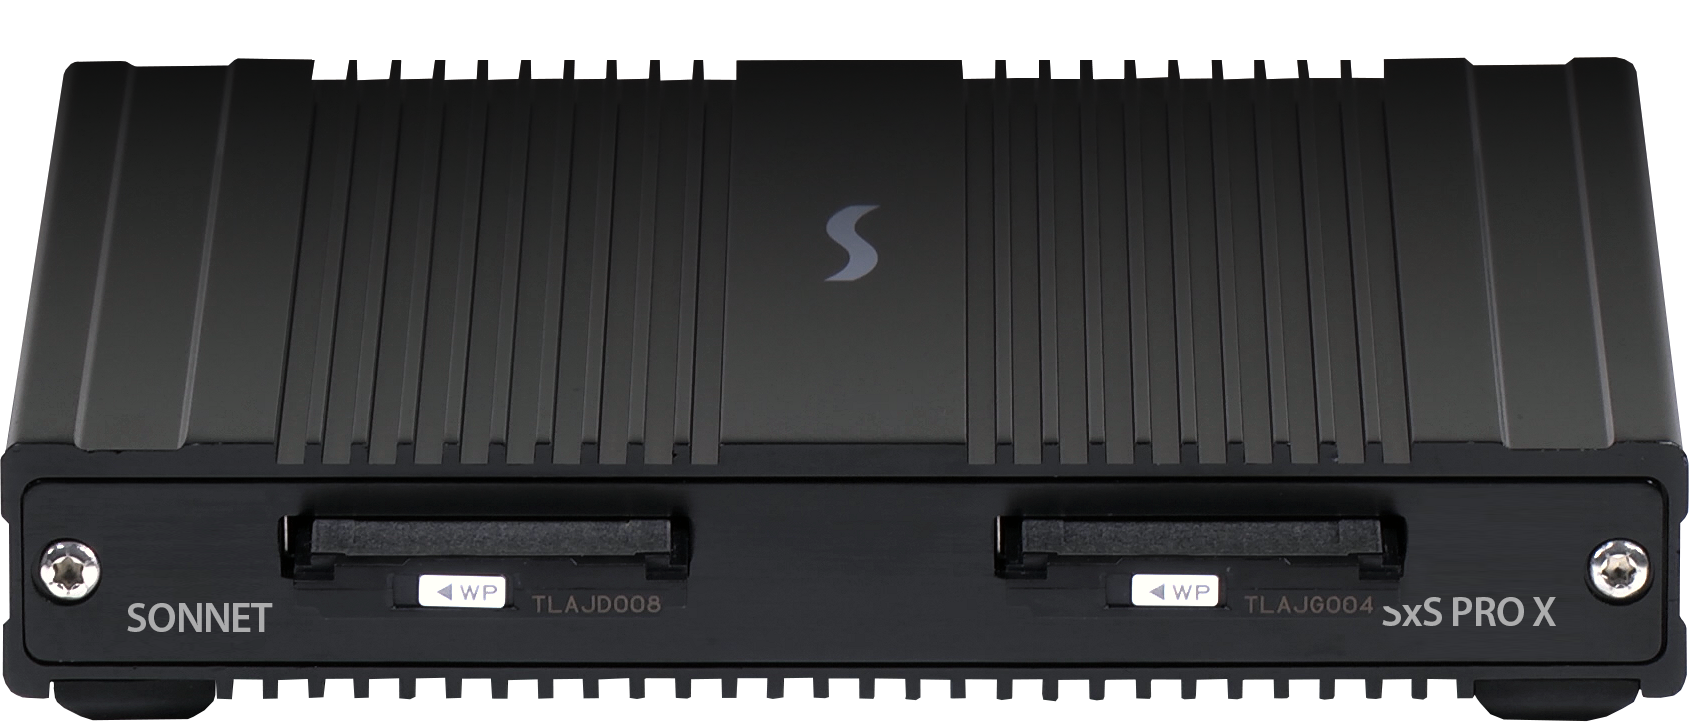 SF3 Series - SxS PRO X Card Reader Front View